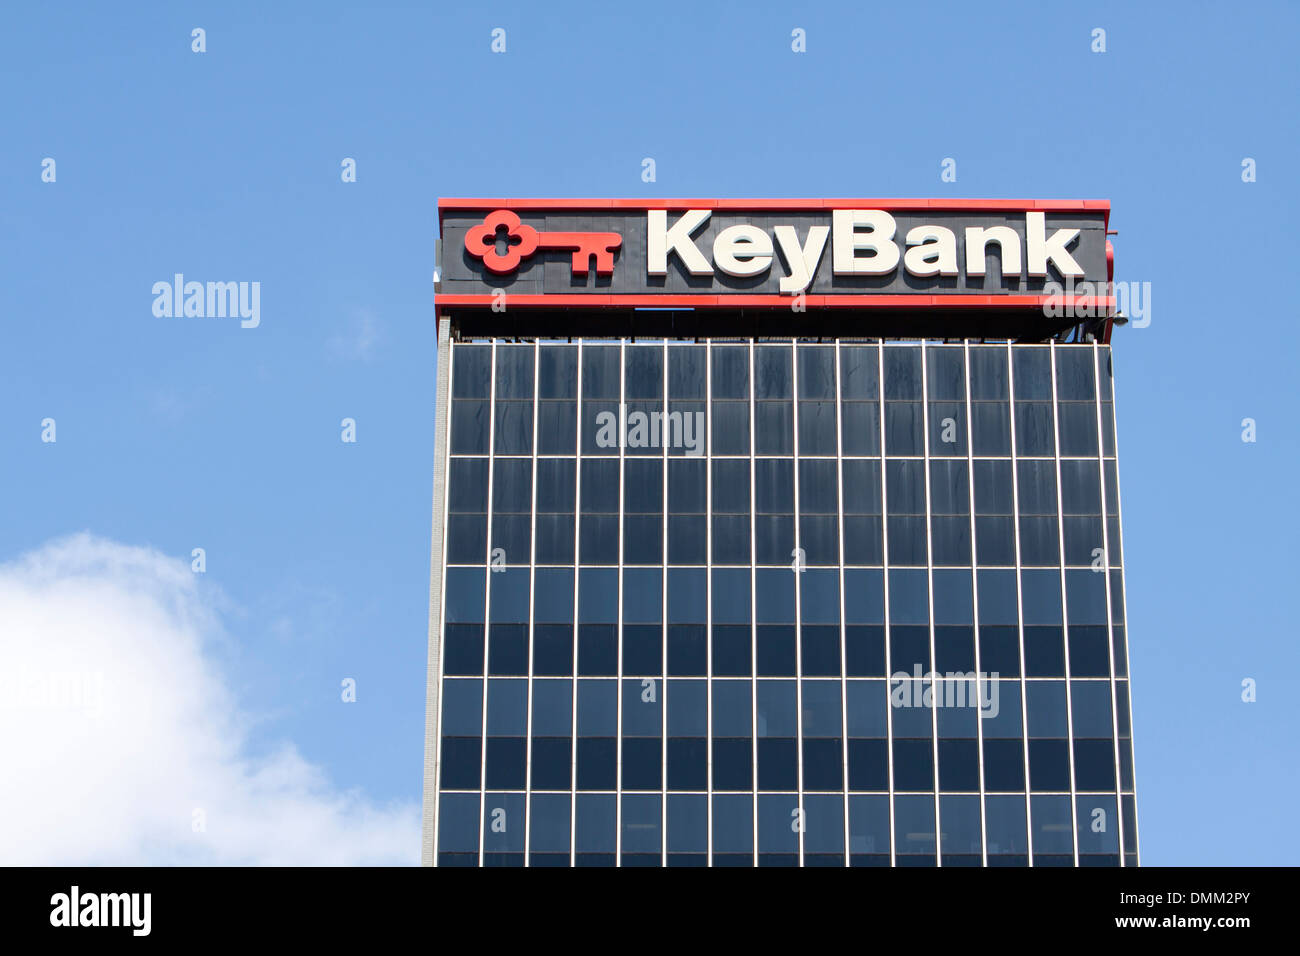 Key Bank Stock Photos & Key Bank Stock Images - Alamy